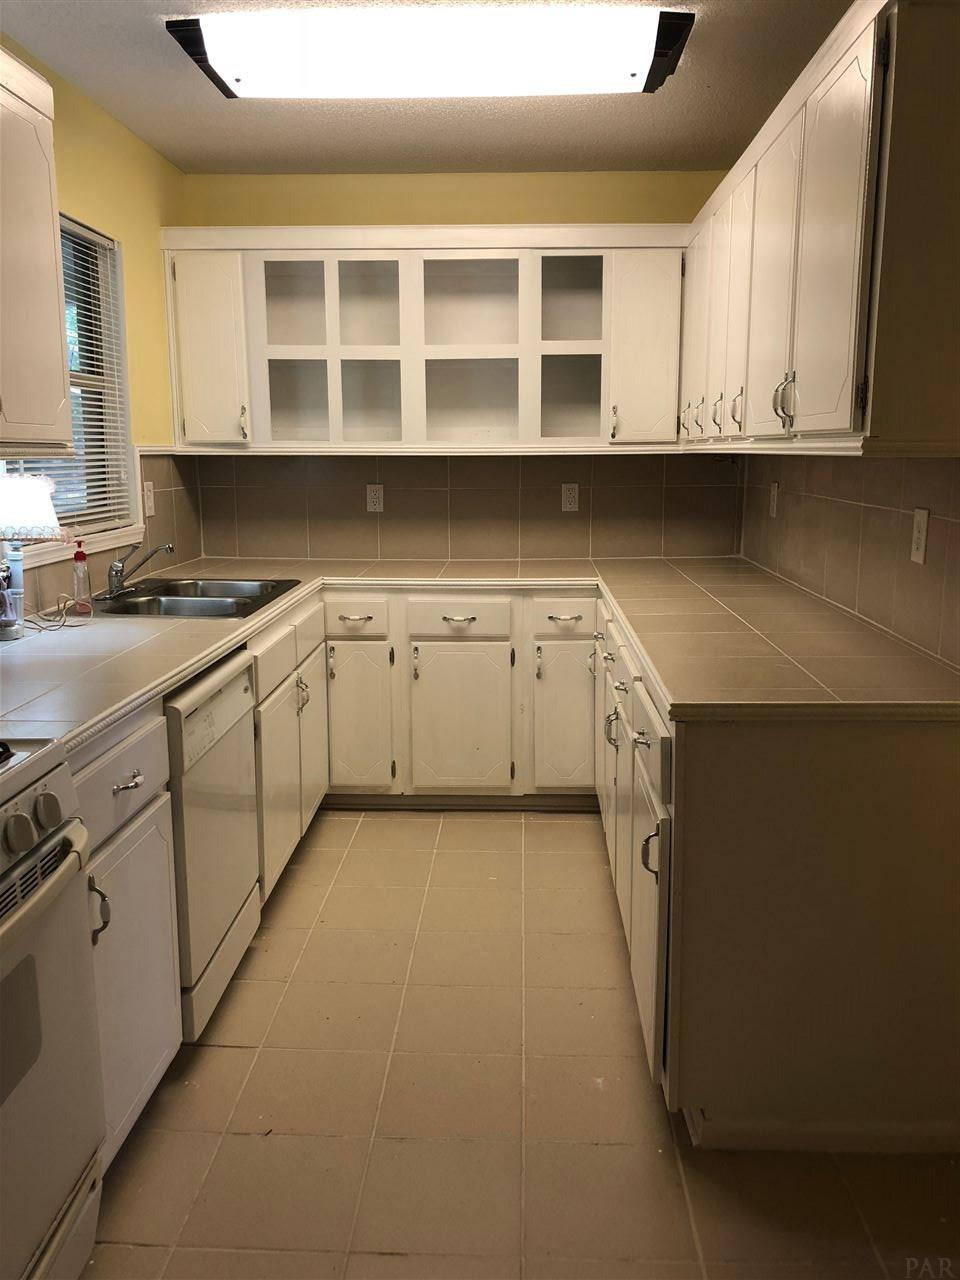 3932 Wilkes St, Pace, FL 32571